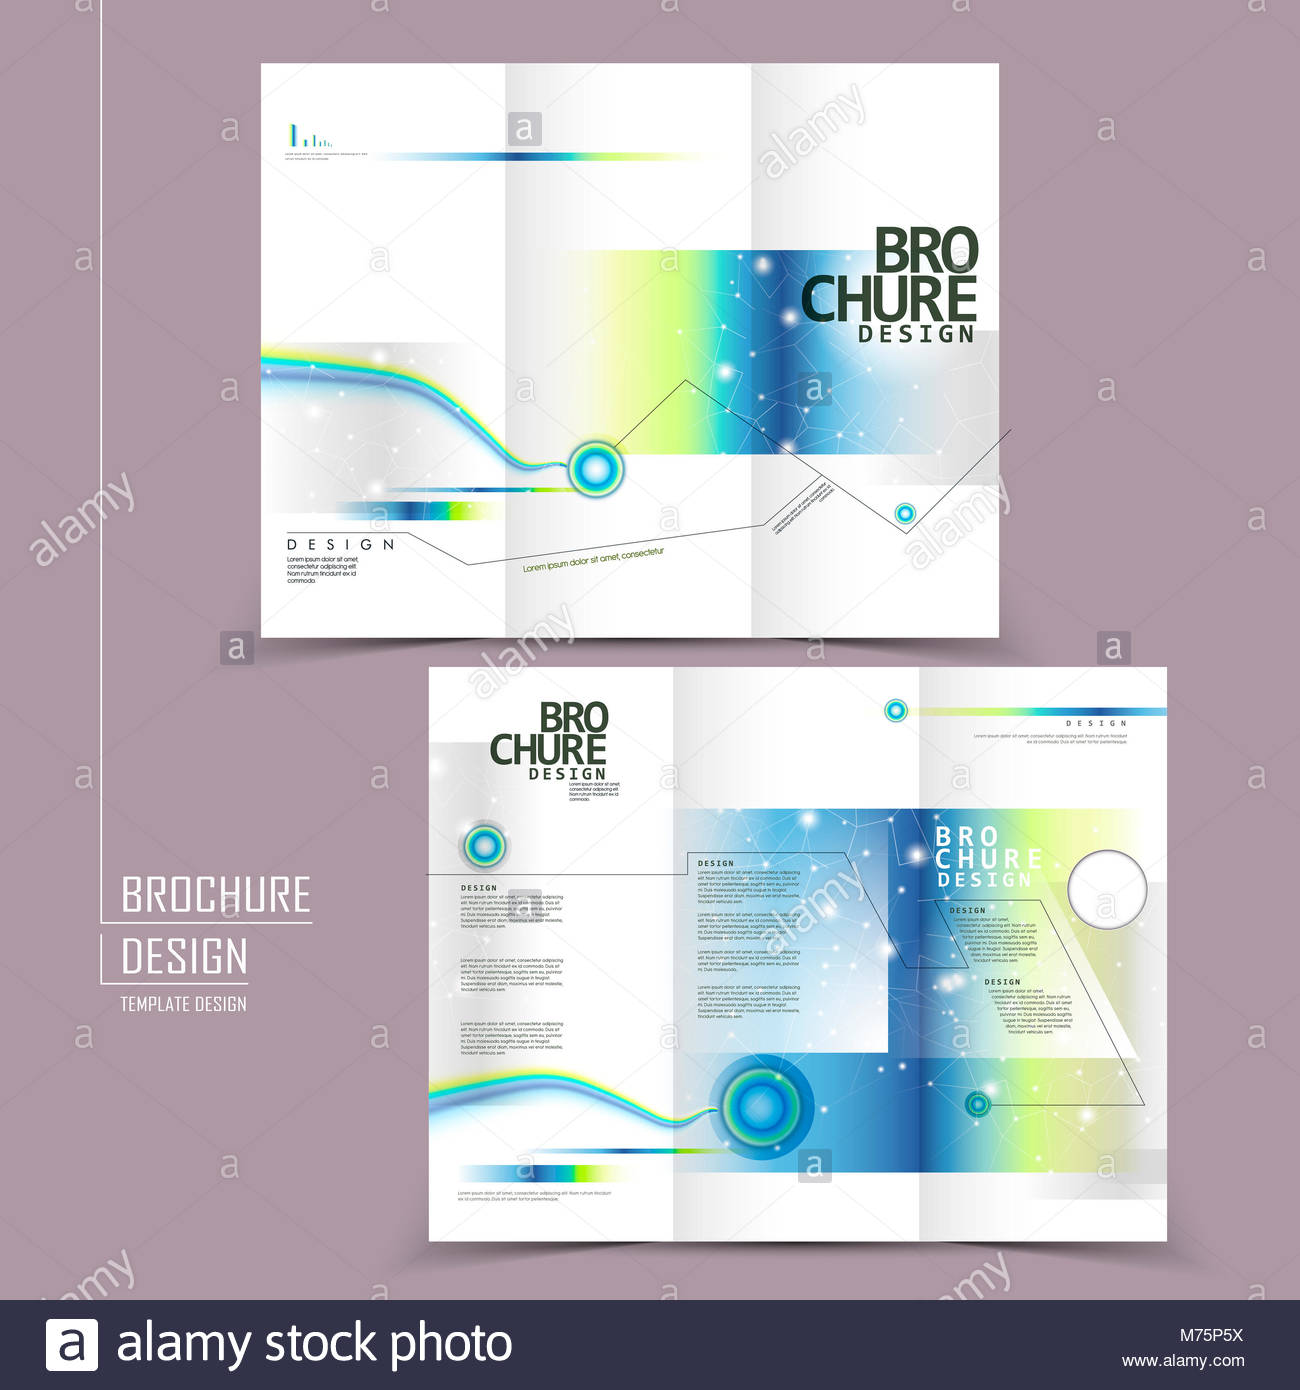 modern tri fold template brochure design in technology style stock